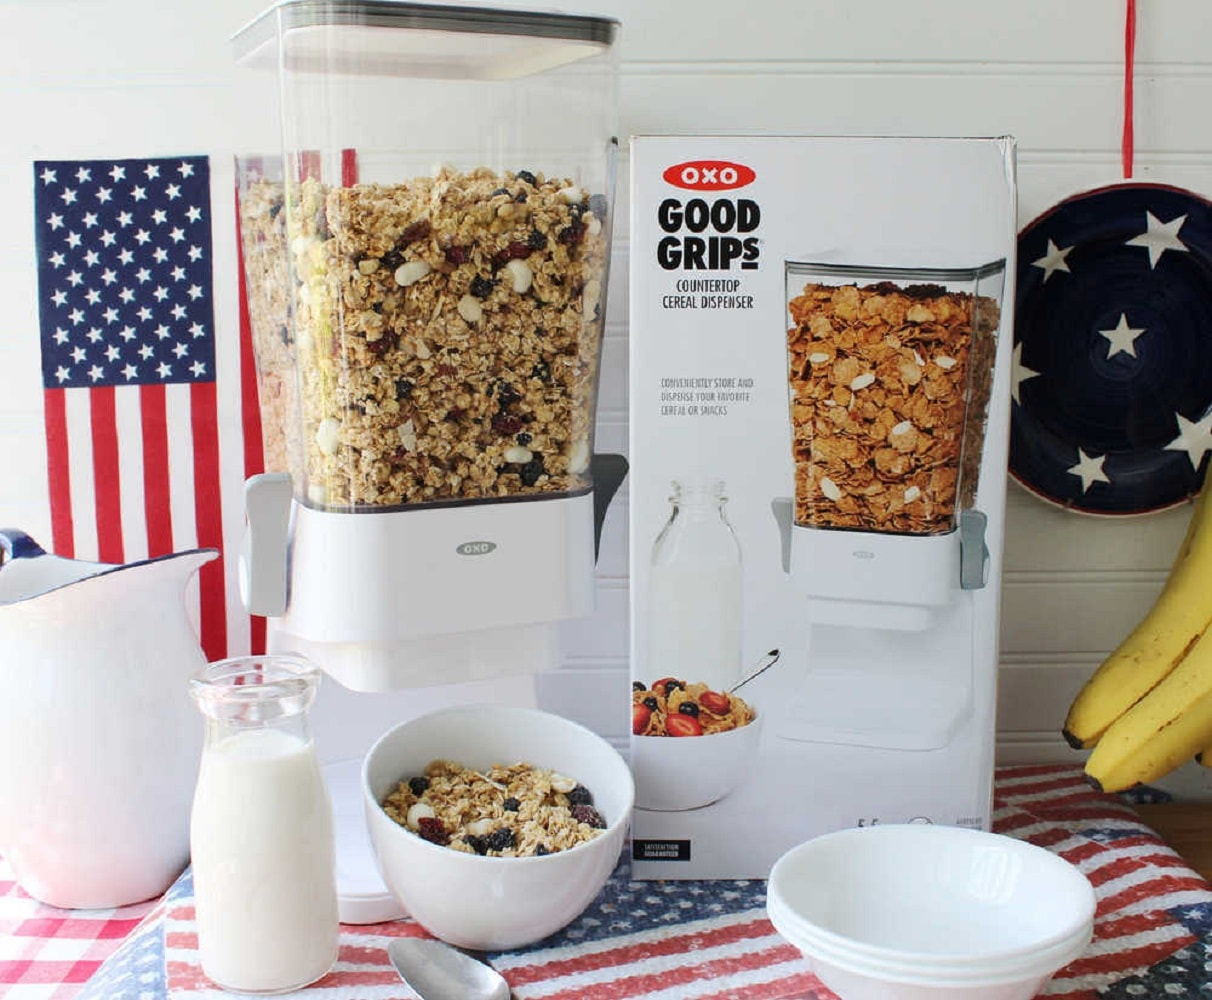 OXO+Good+Grips+Countertop+Cereal+Dispenser